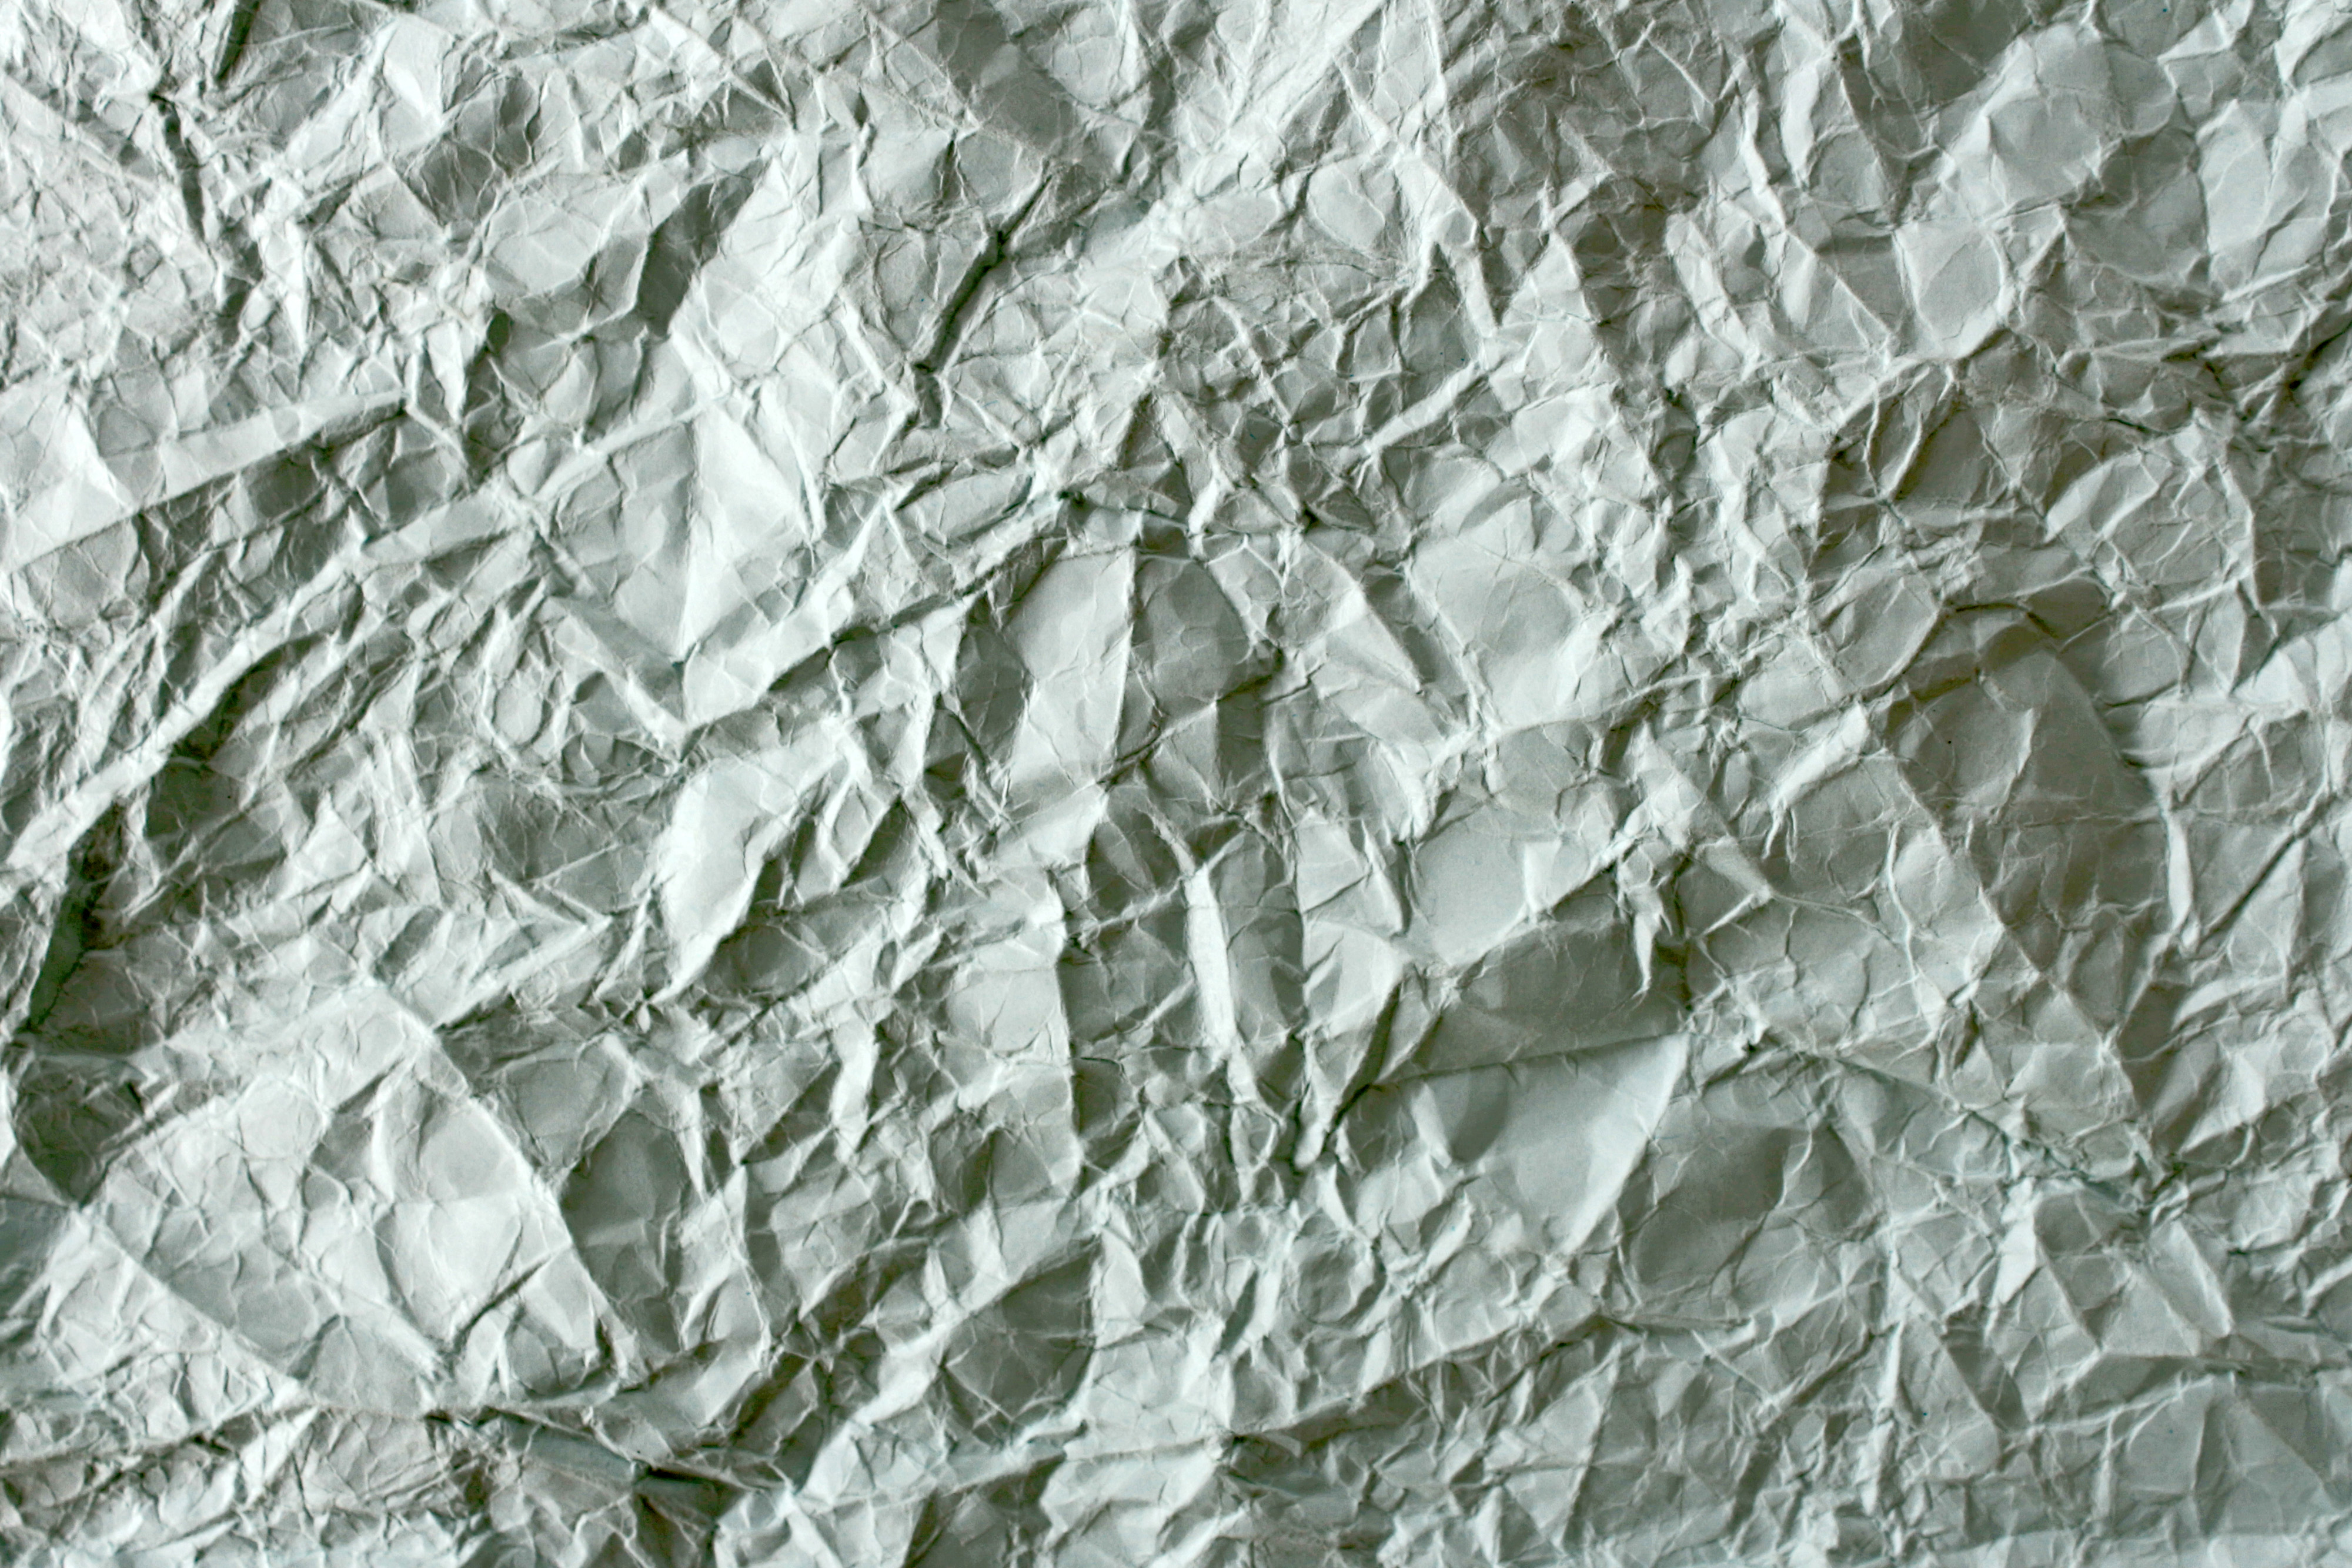 Crumpled Paper Texture image - Free stock photo - Public Domain ...